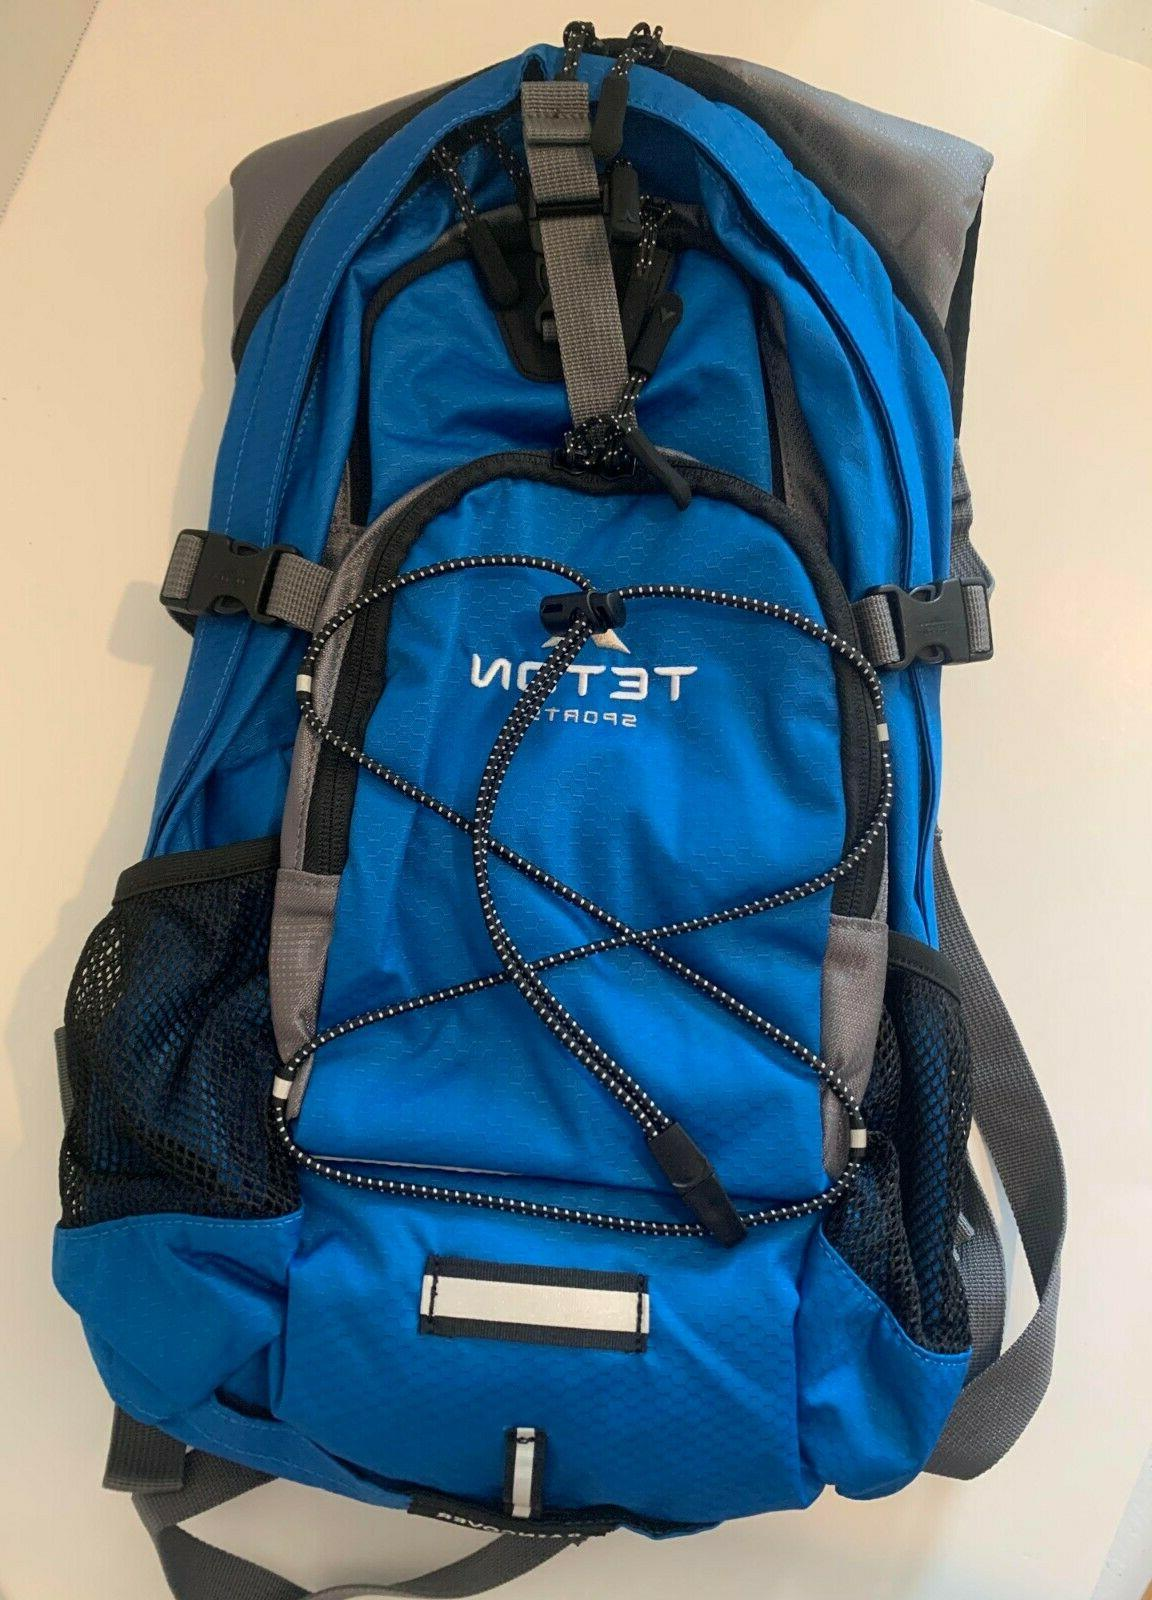 new without tags hydration backpack backpacking blue